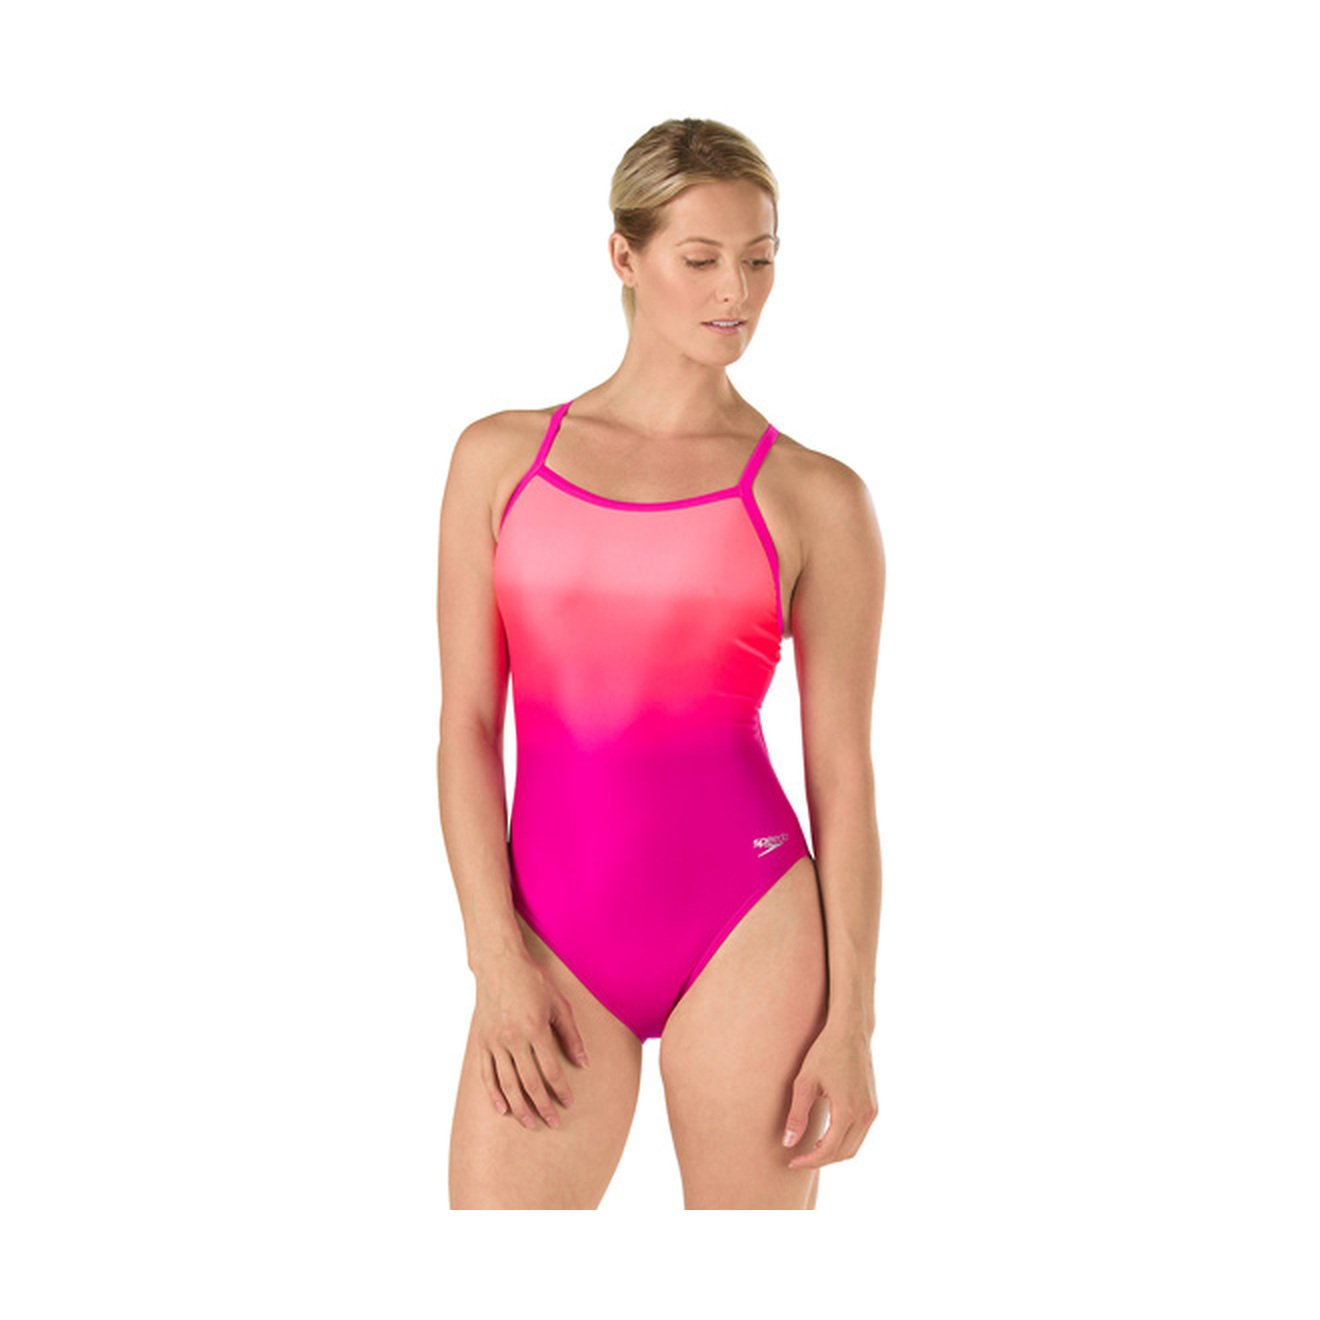 Speedo Womens Powerflex Eco Ombre Flyback One Piece Swimsuit